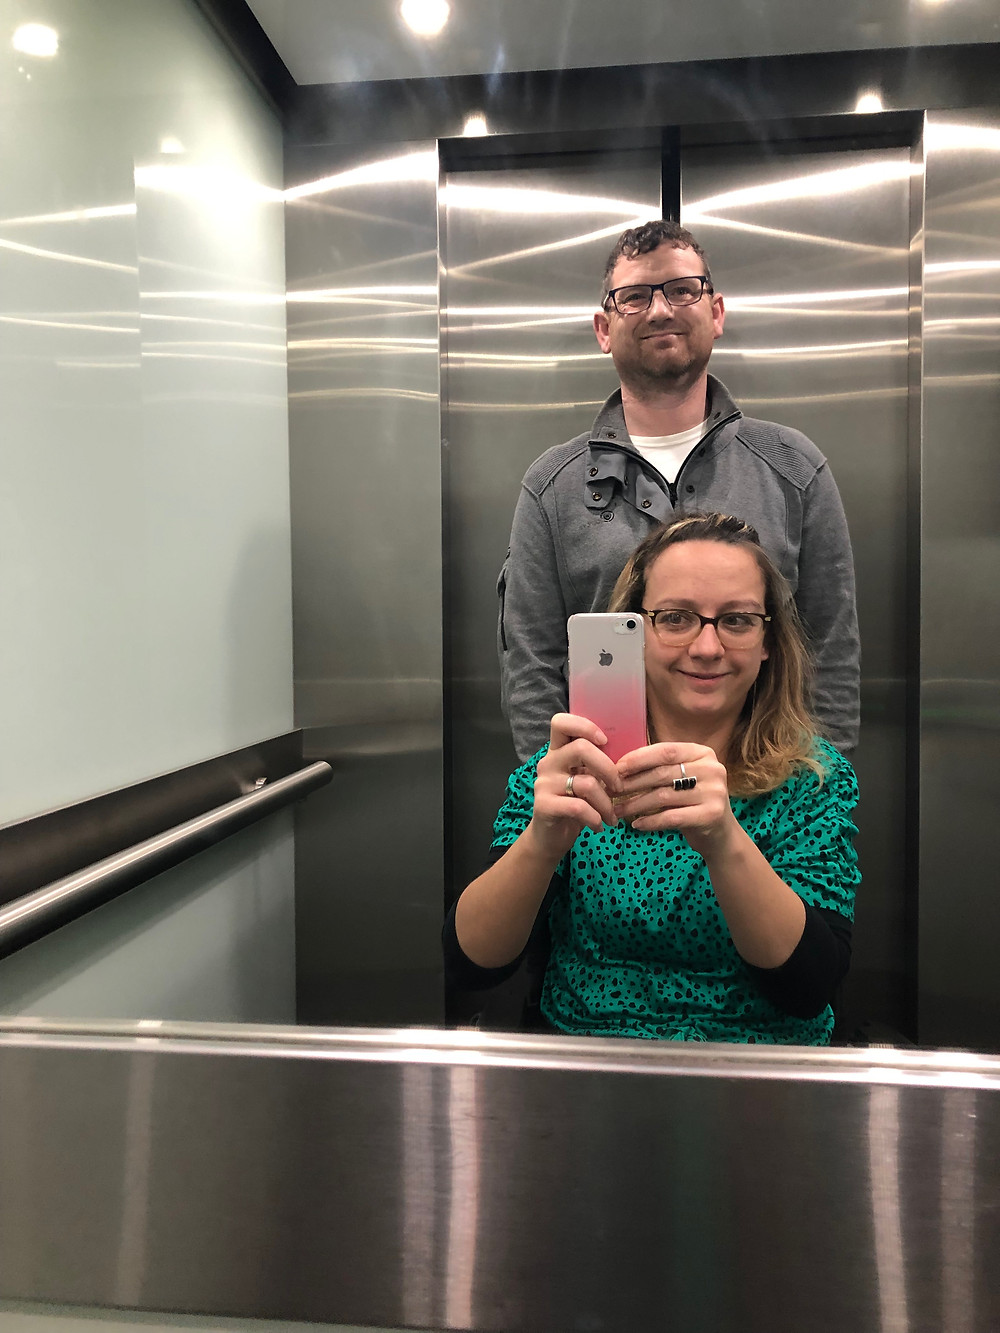 A man and a woman in a lift